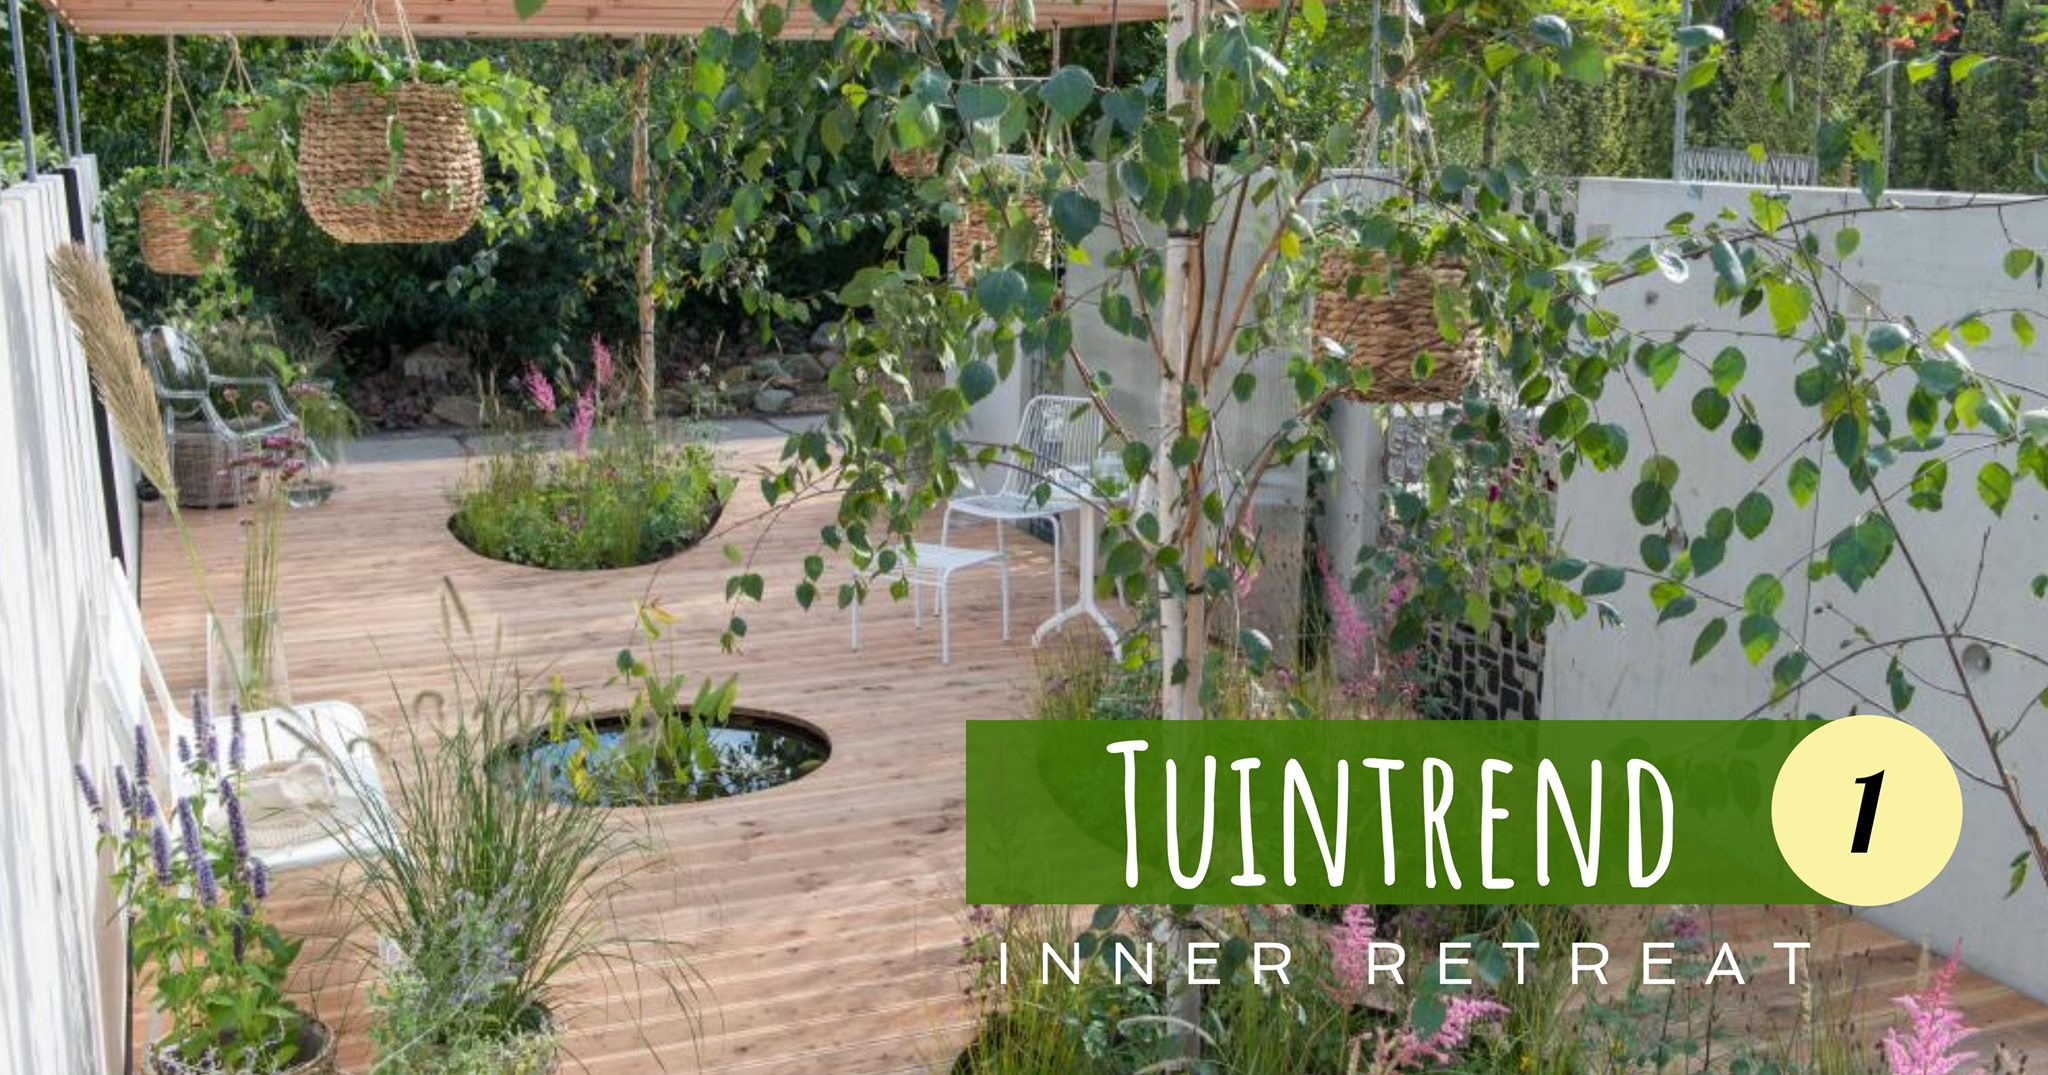 Tuintrend 1: Inner Retreat